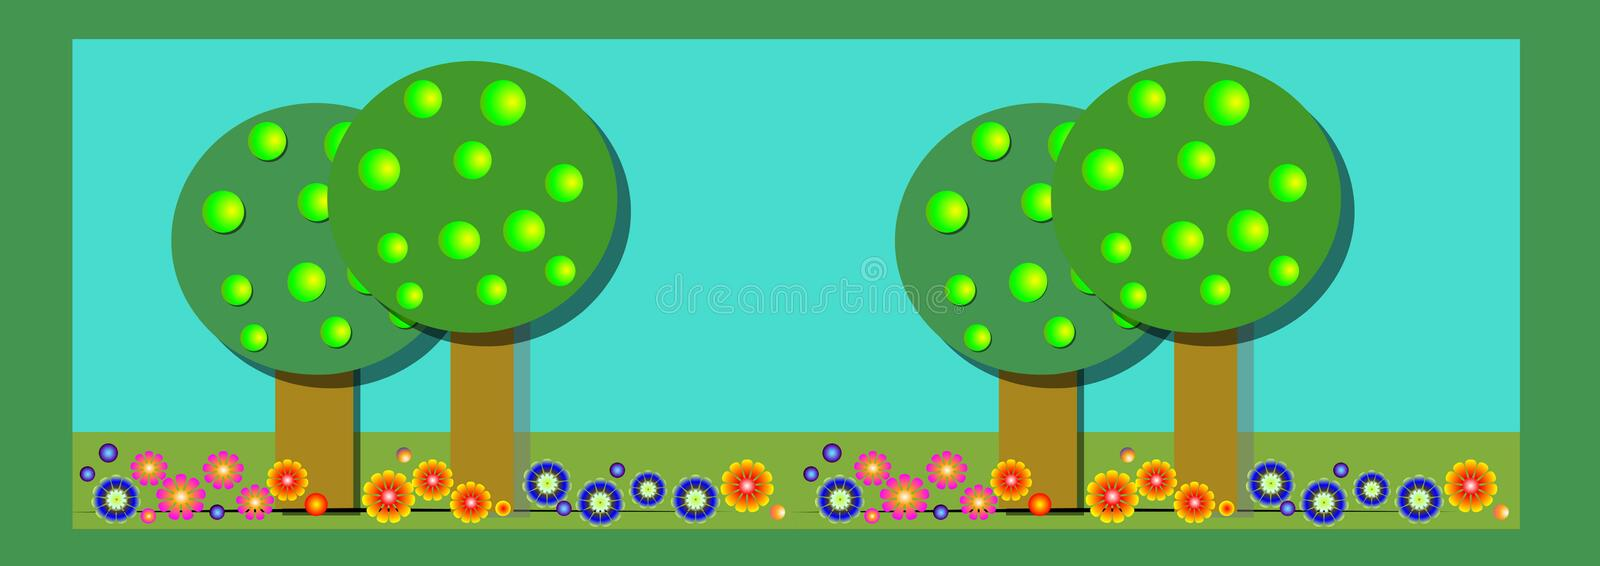 Banner appletrees and flowers. Banner / header / illustration with decorative apple trees and colorful flowers royalty free illustration